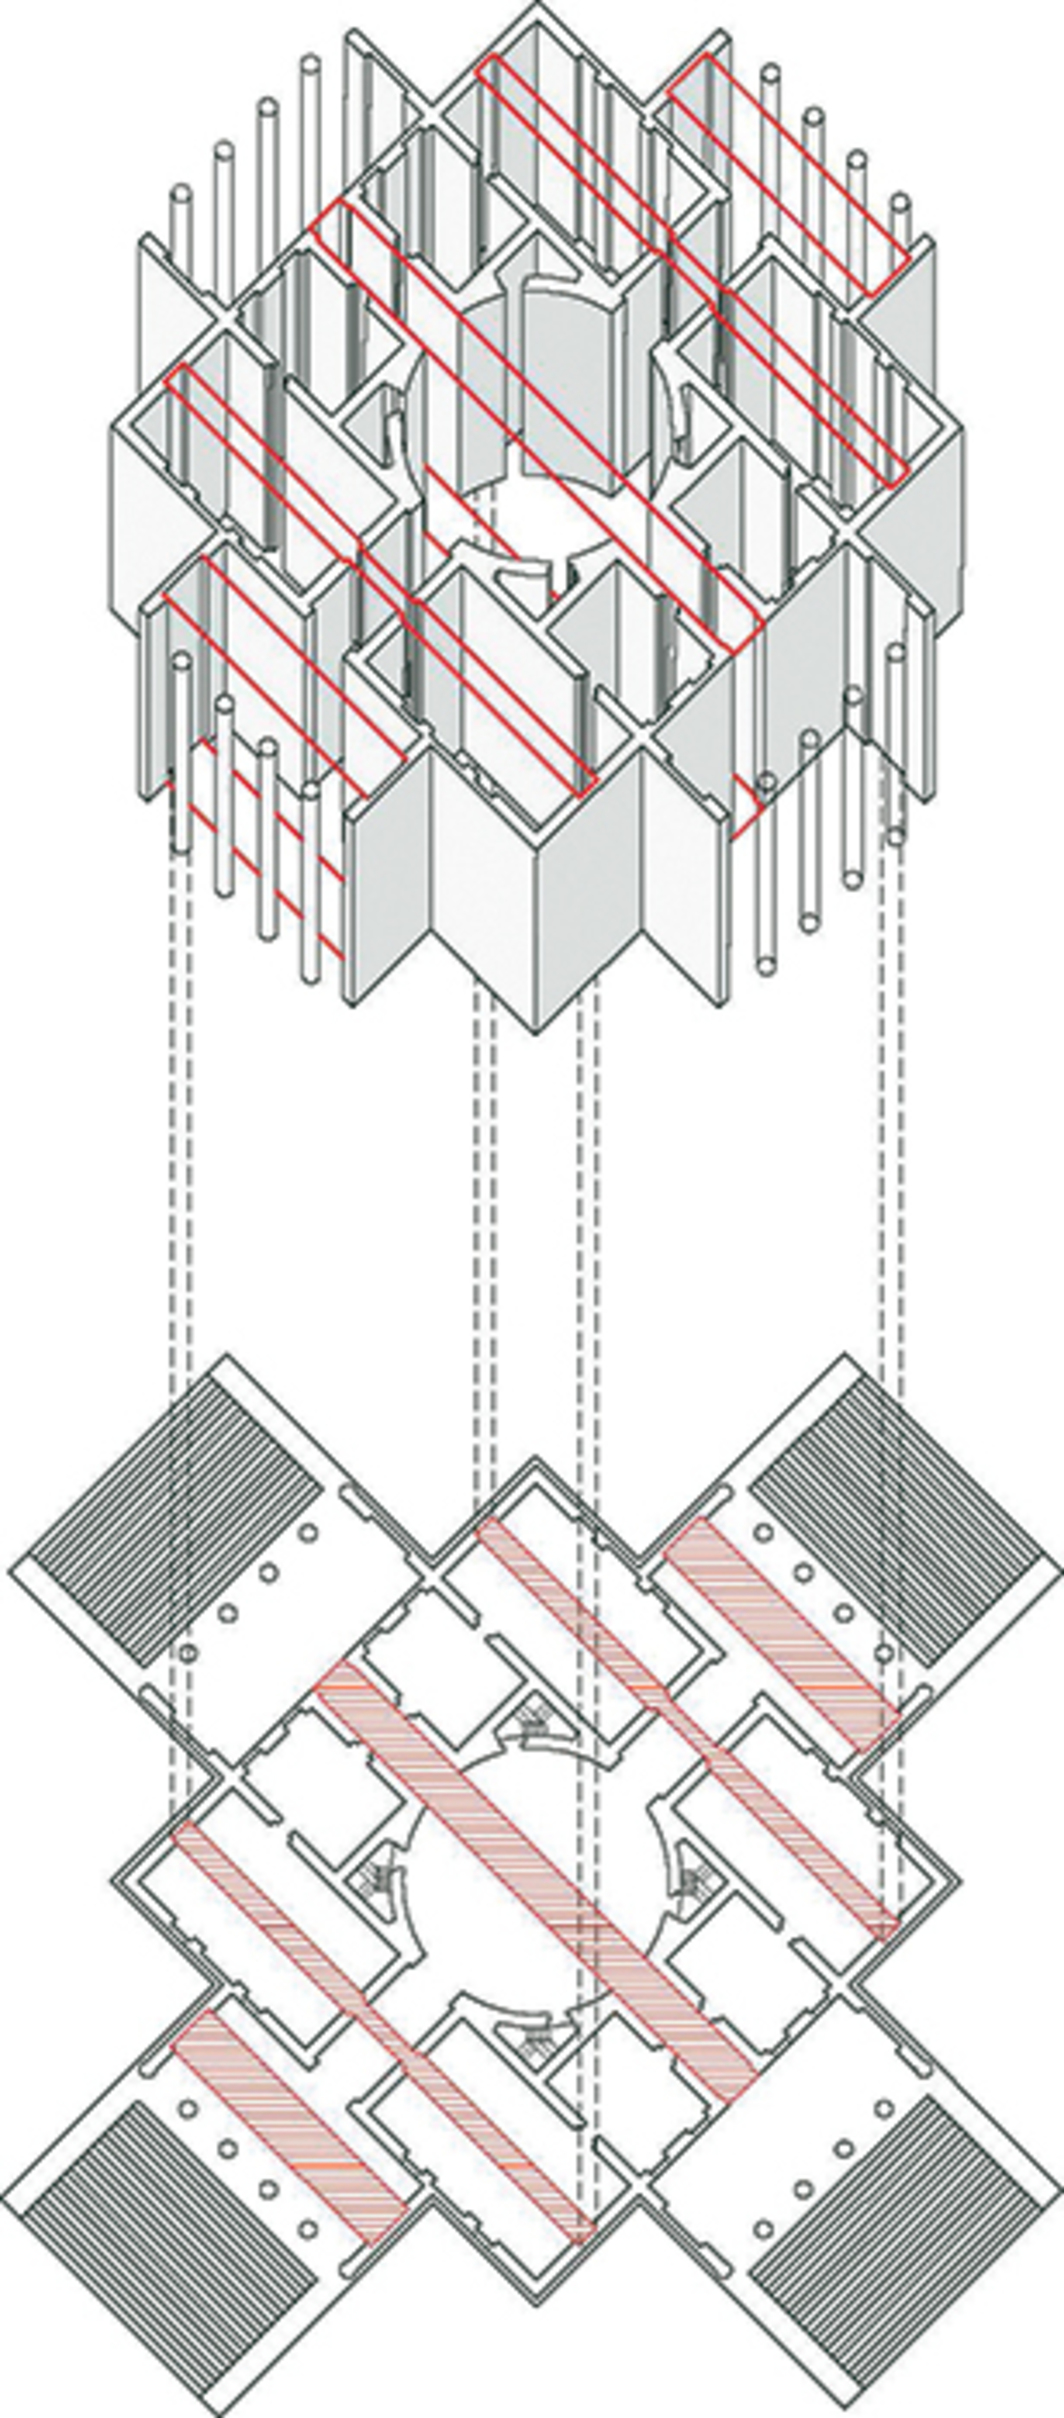 Peter Eisenman's Palladio Virtuel